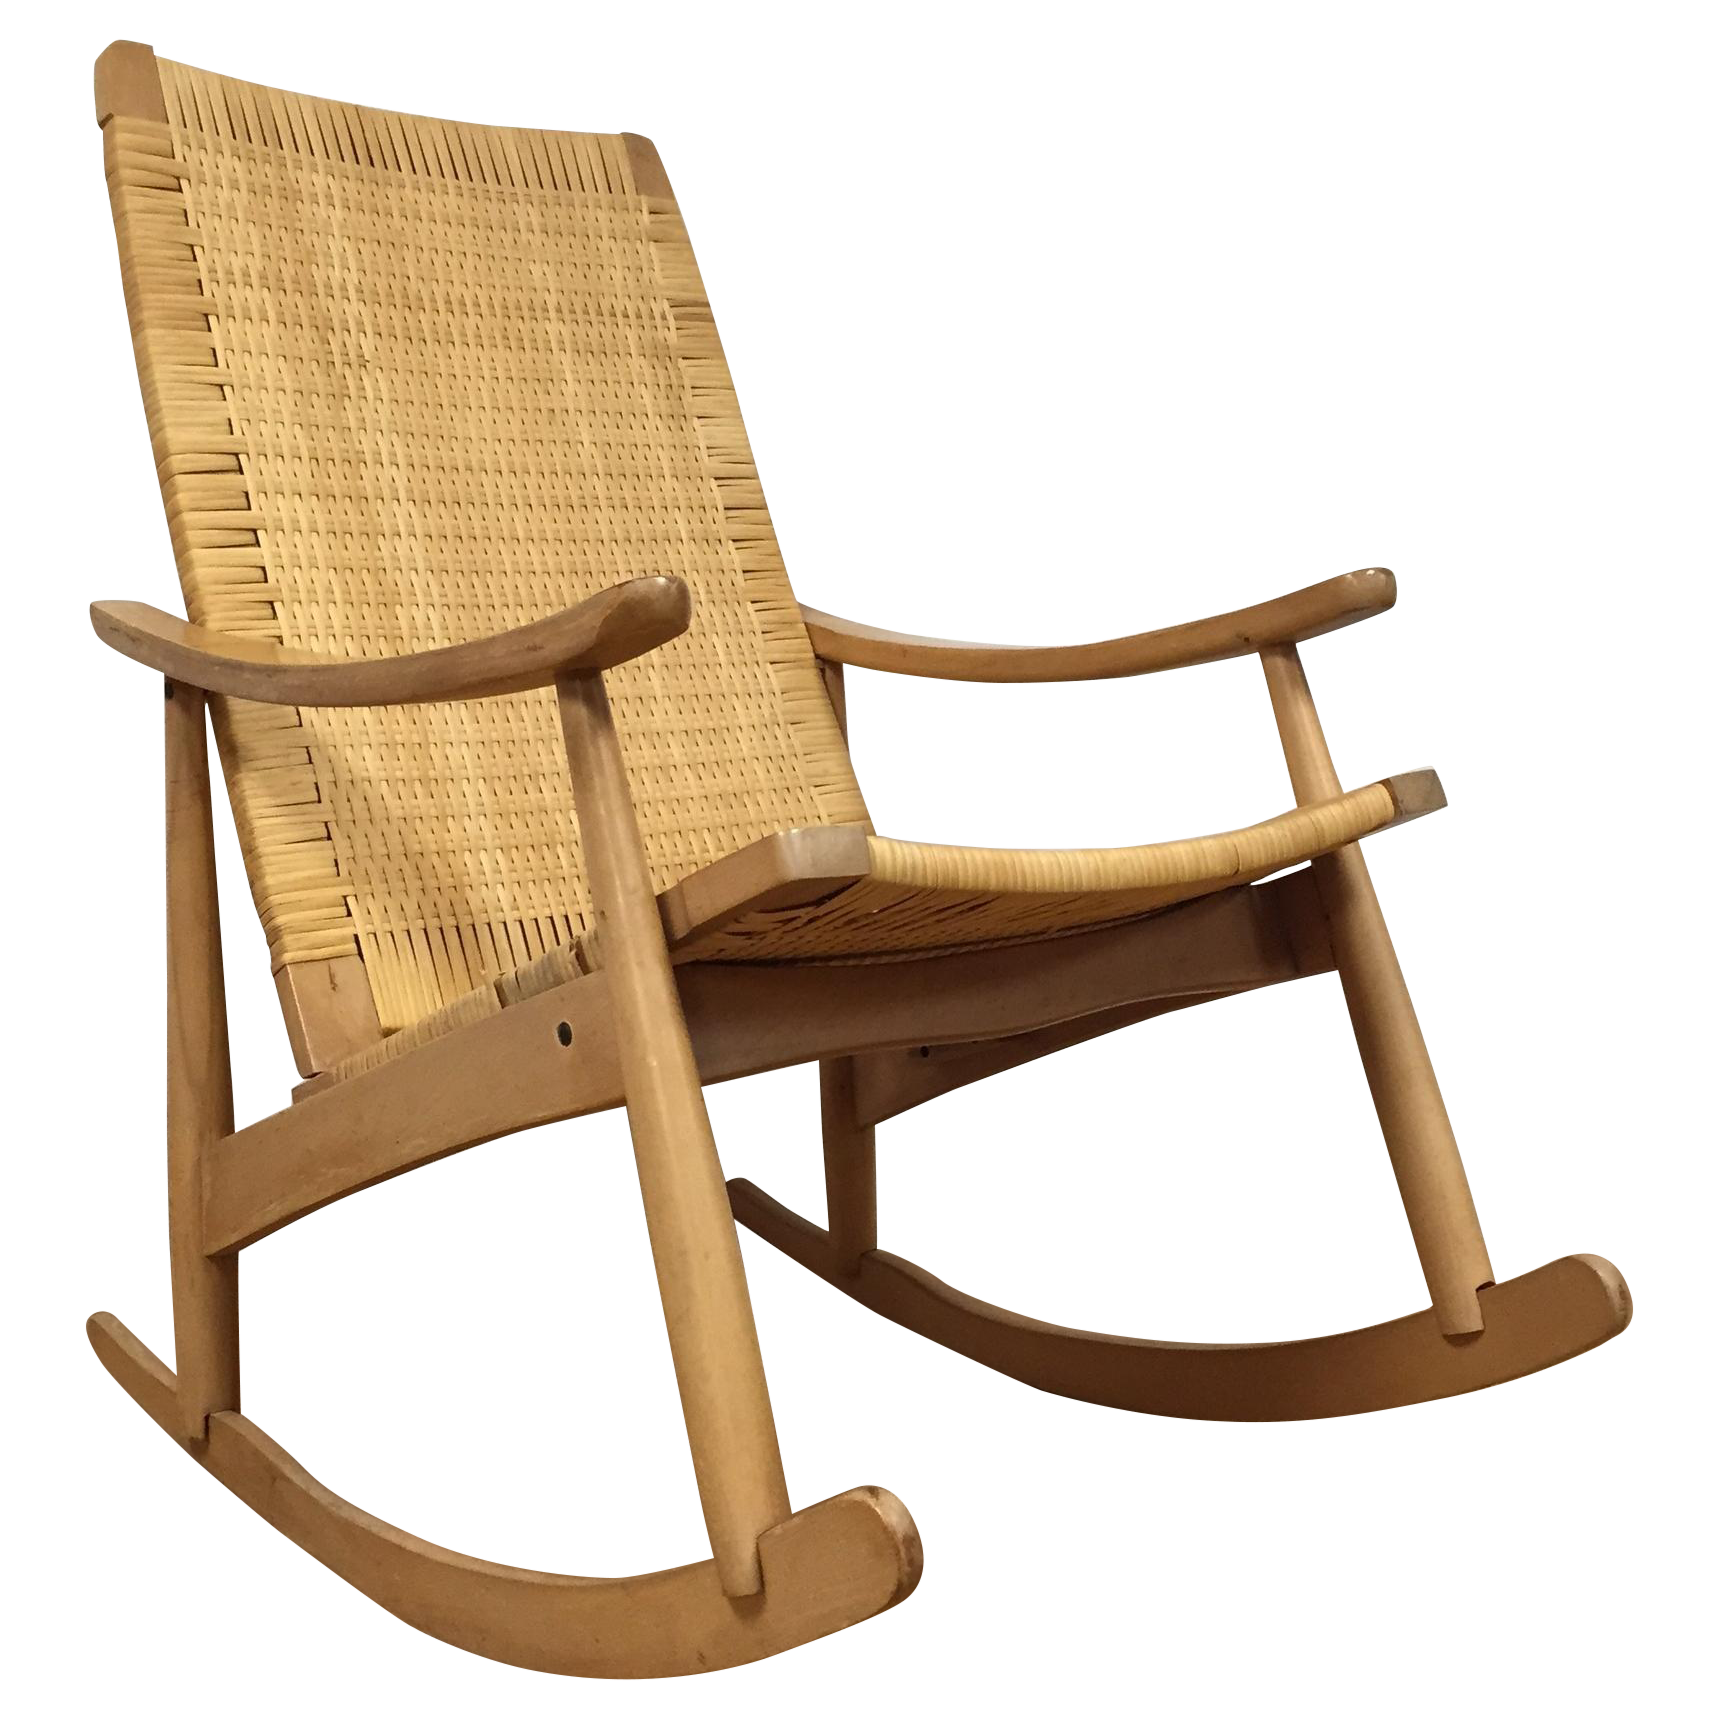 chairs wegner dondolo master chair century poltrona victorian sale seating style turned midcentury for rocking furniture hans modern a mid f j at id